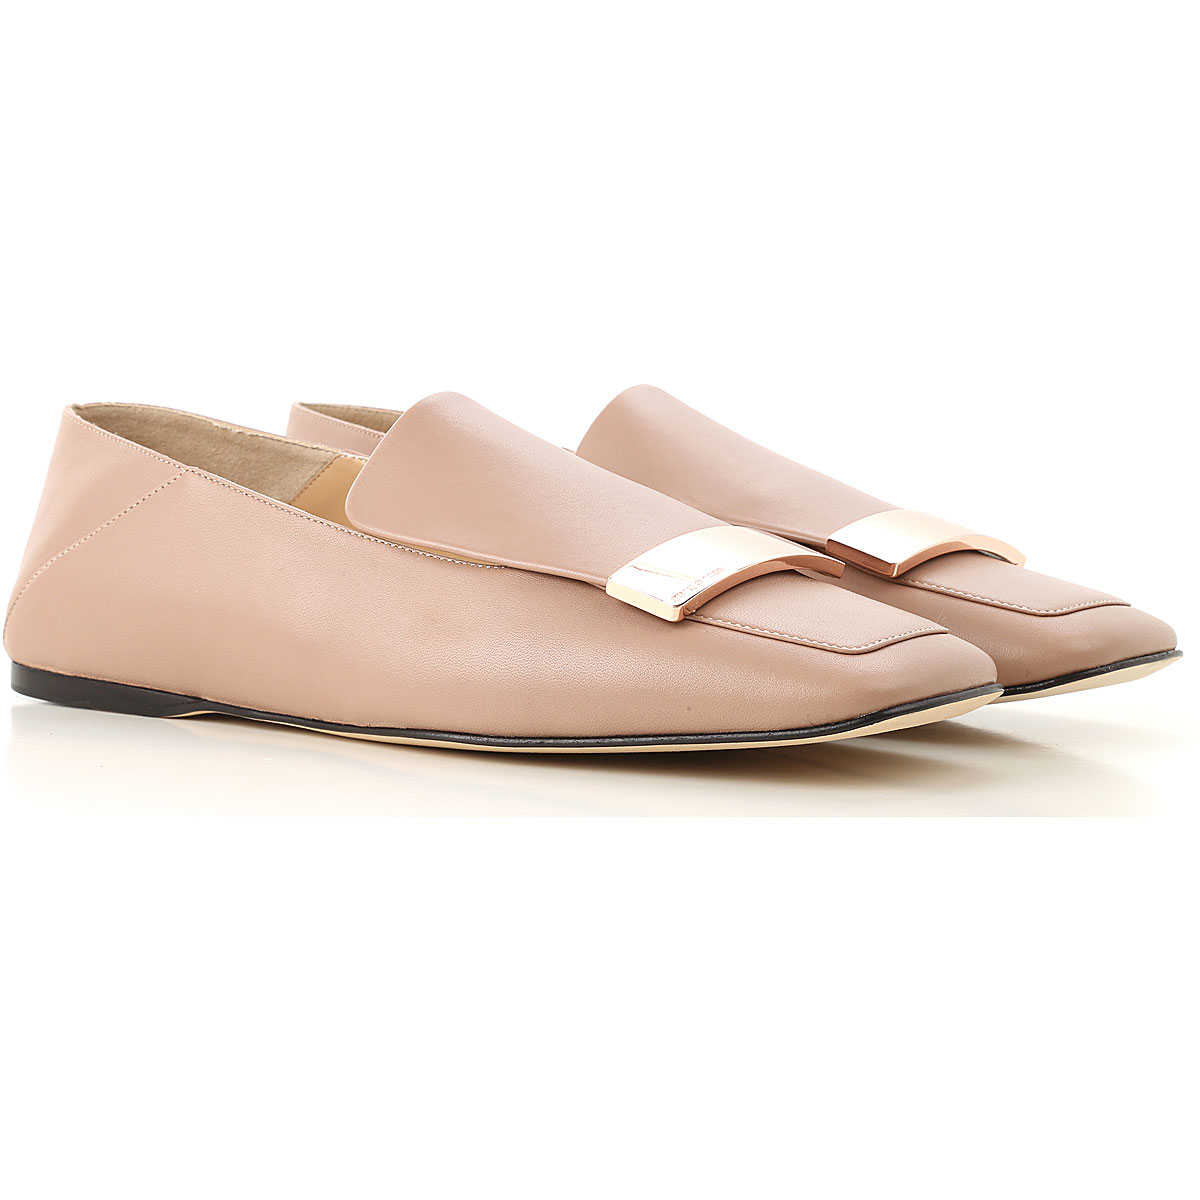 Sergio Rossi Ballet Flats Ballerina Shoes for Women